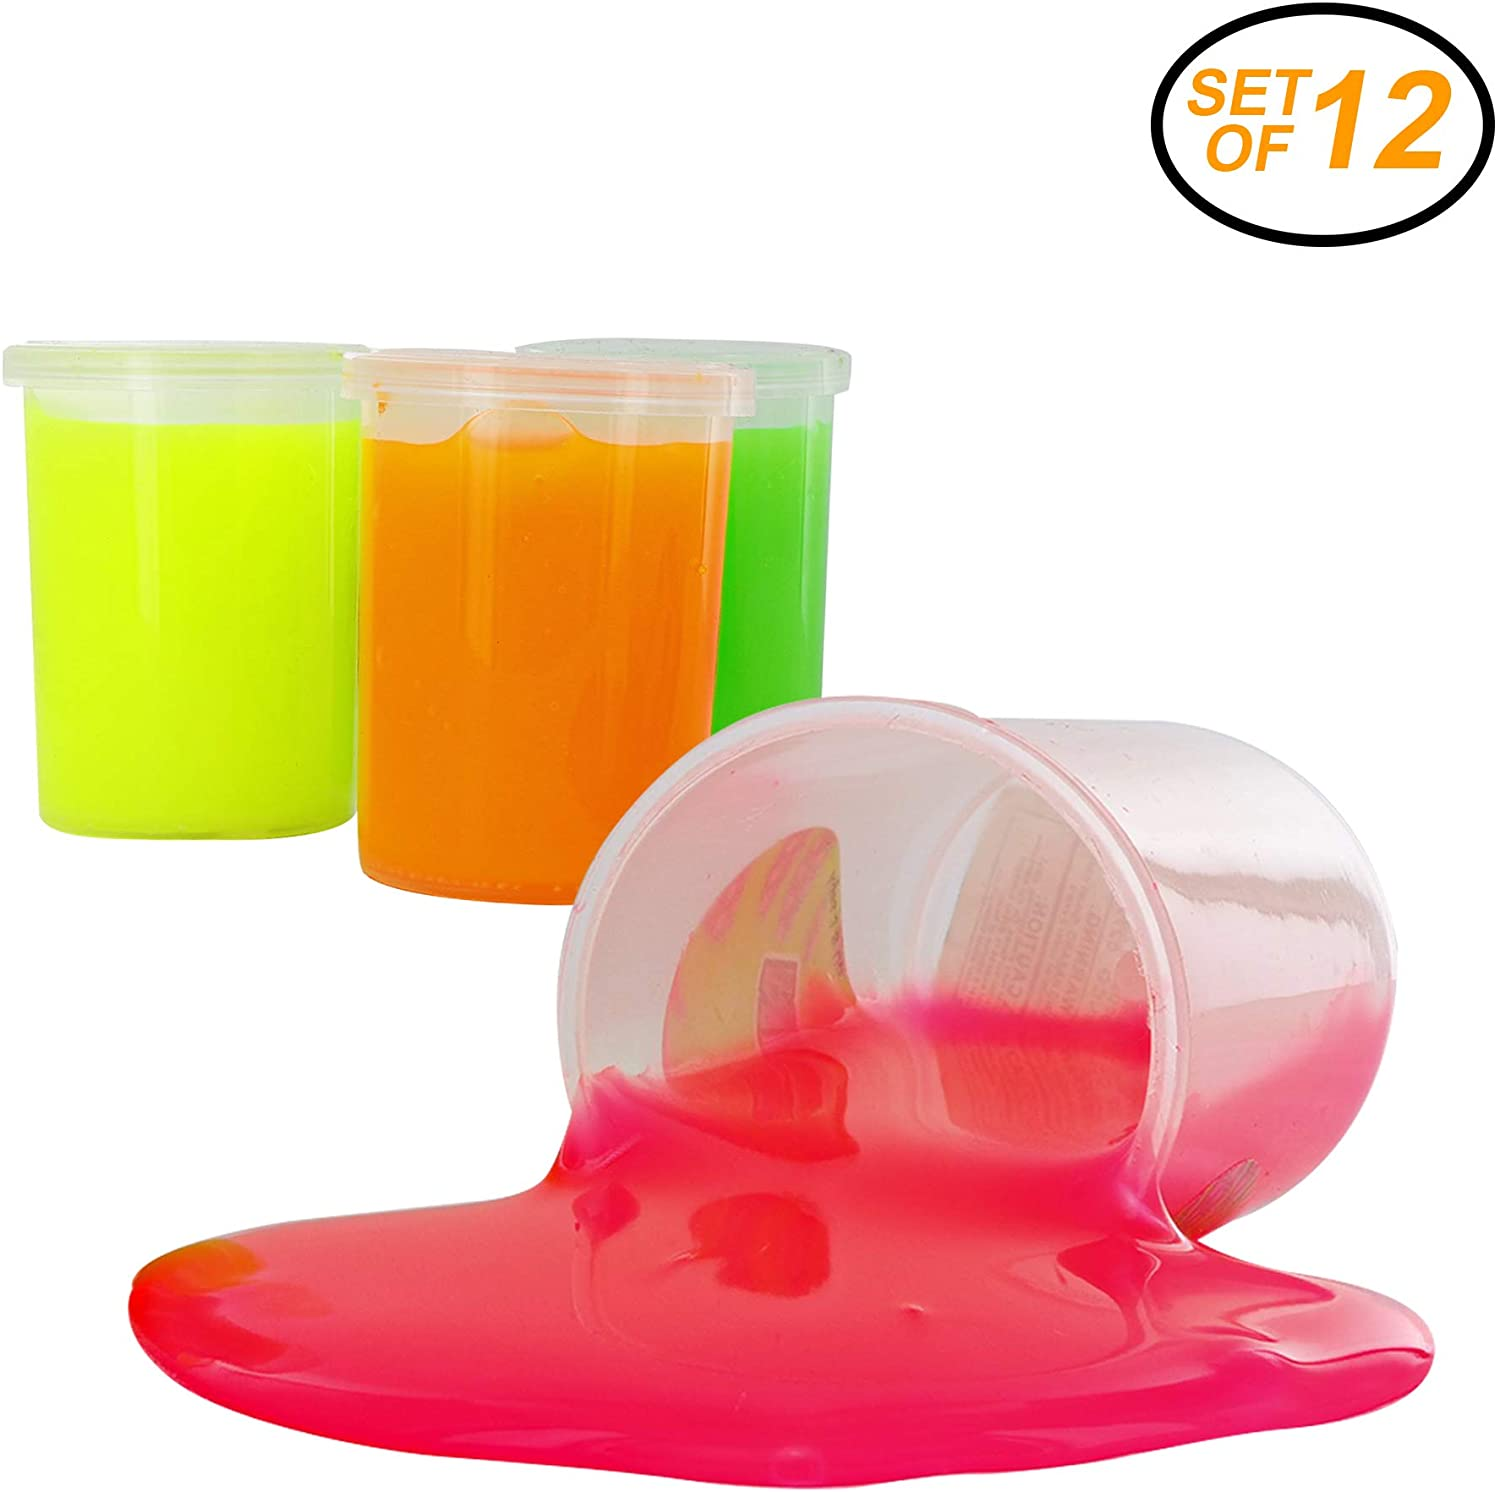 Srenta Funny Neon Slime Putty Mud Clay Plasticine Sludge Stress Reliever Toys for Kids. Pack of 12